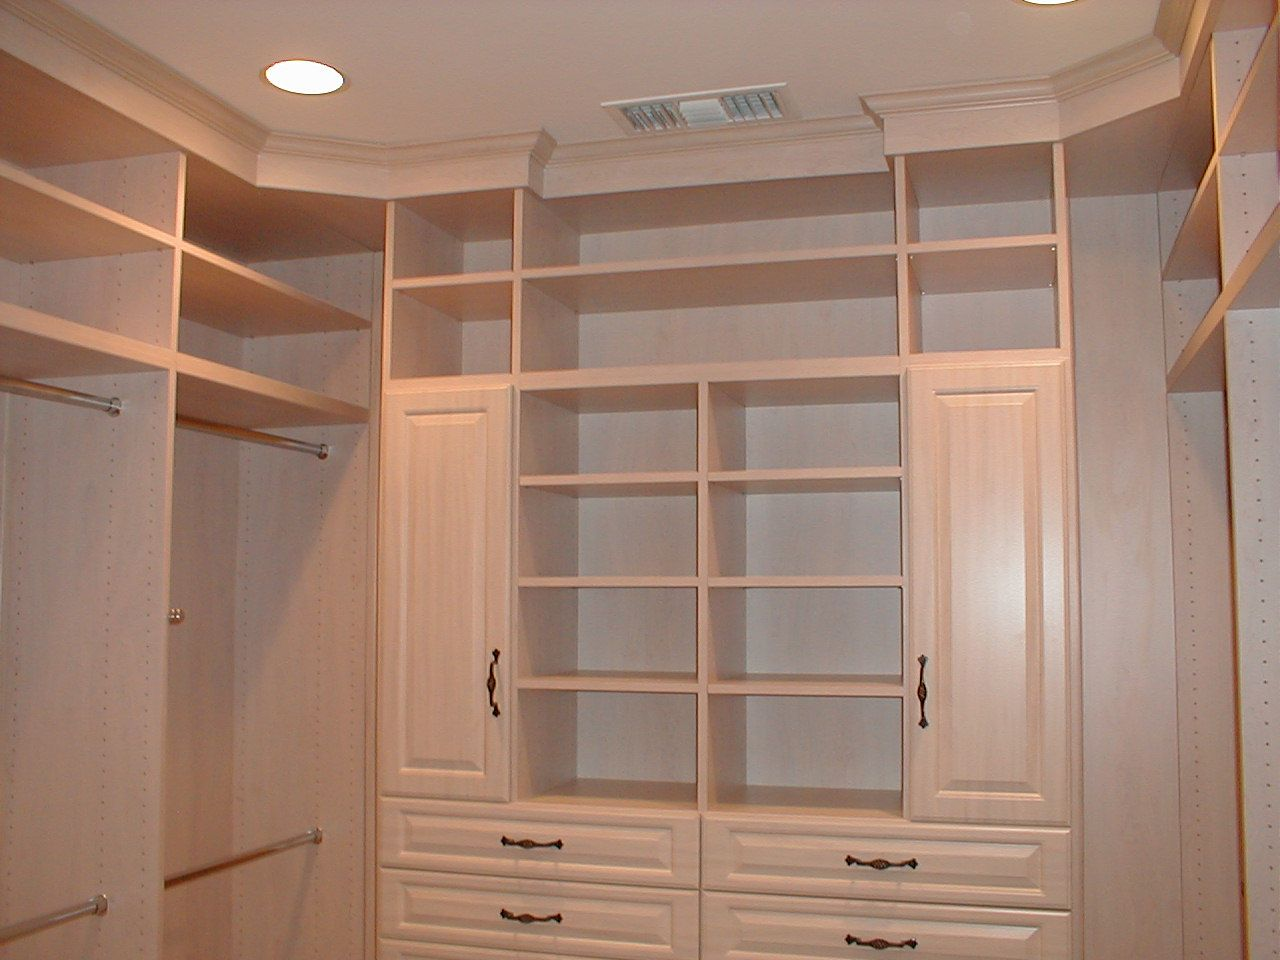 You Can Get A Little Creative With Your Closet Design Few Simple Ideas